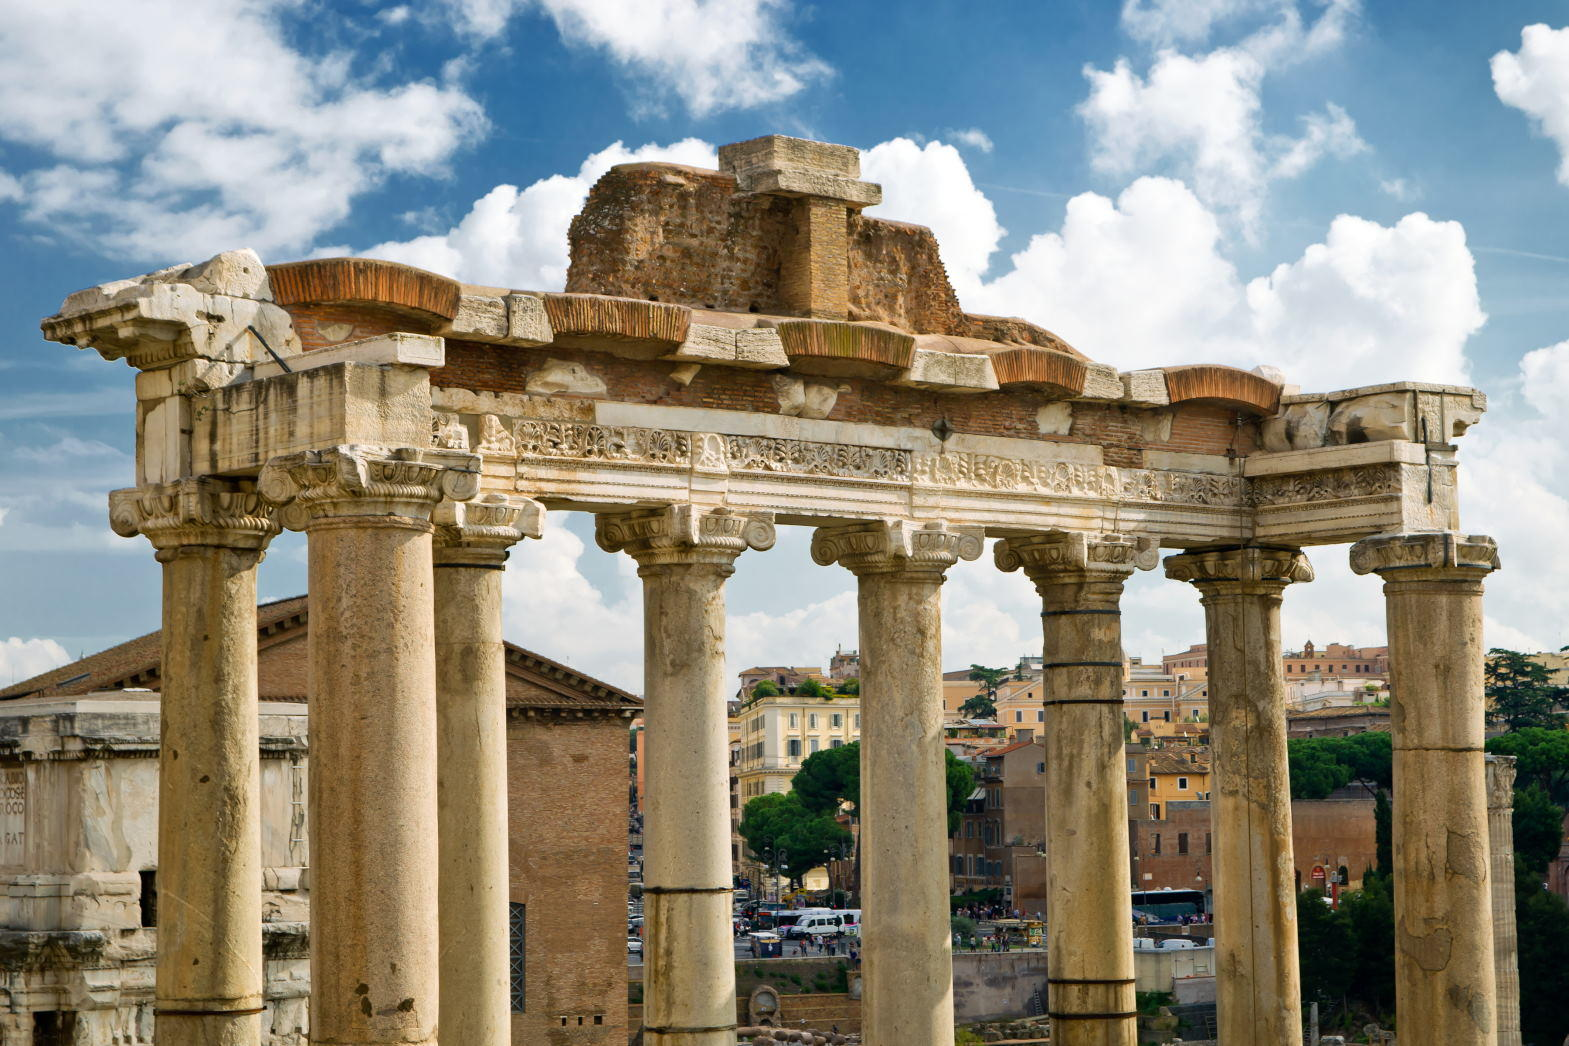 Temple of Saturn in the Roman Forum, Rome, Italy.